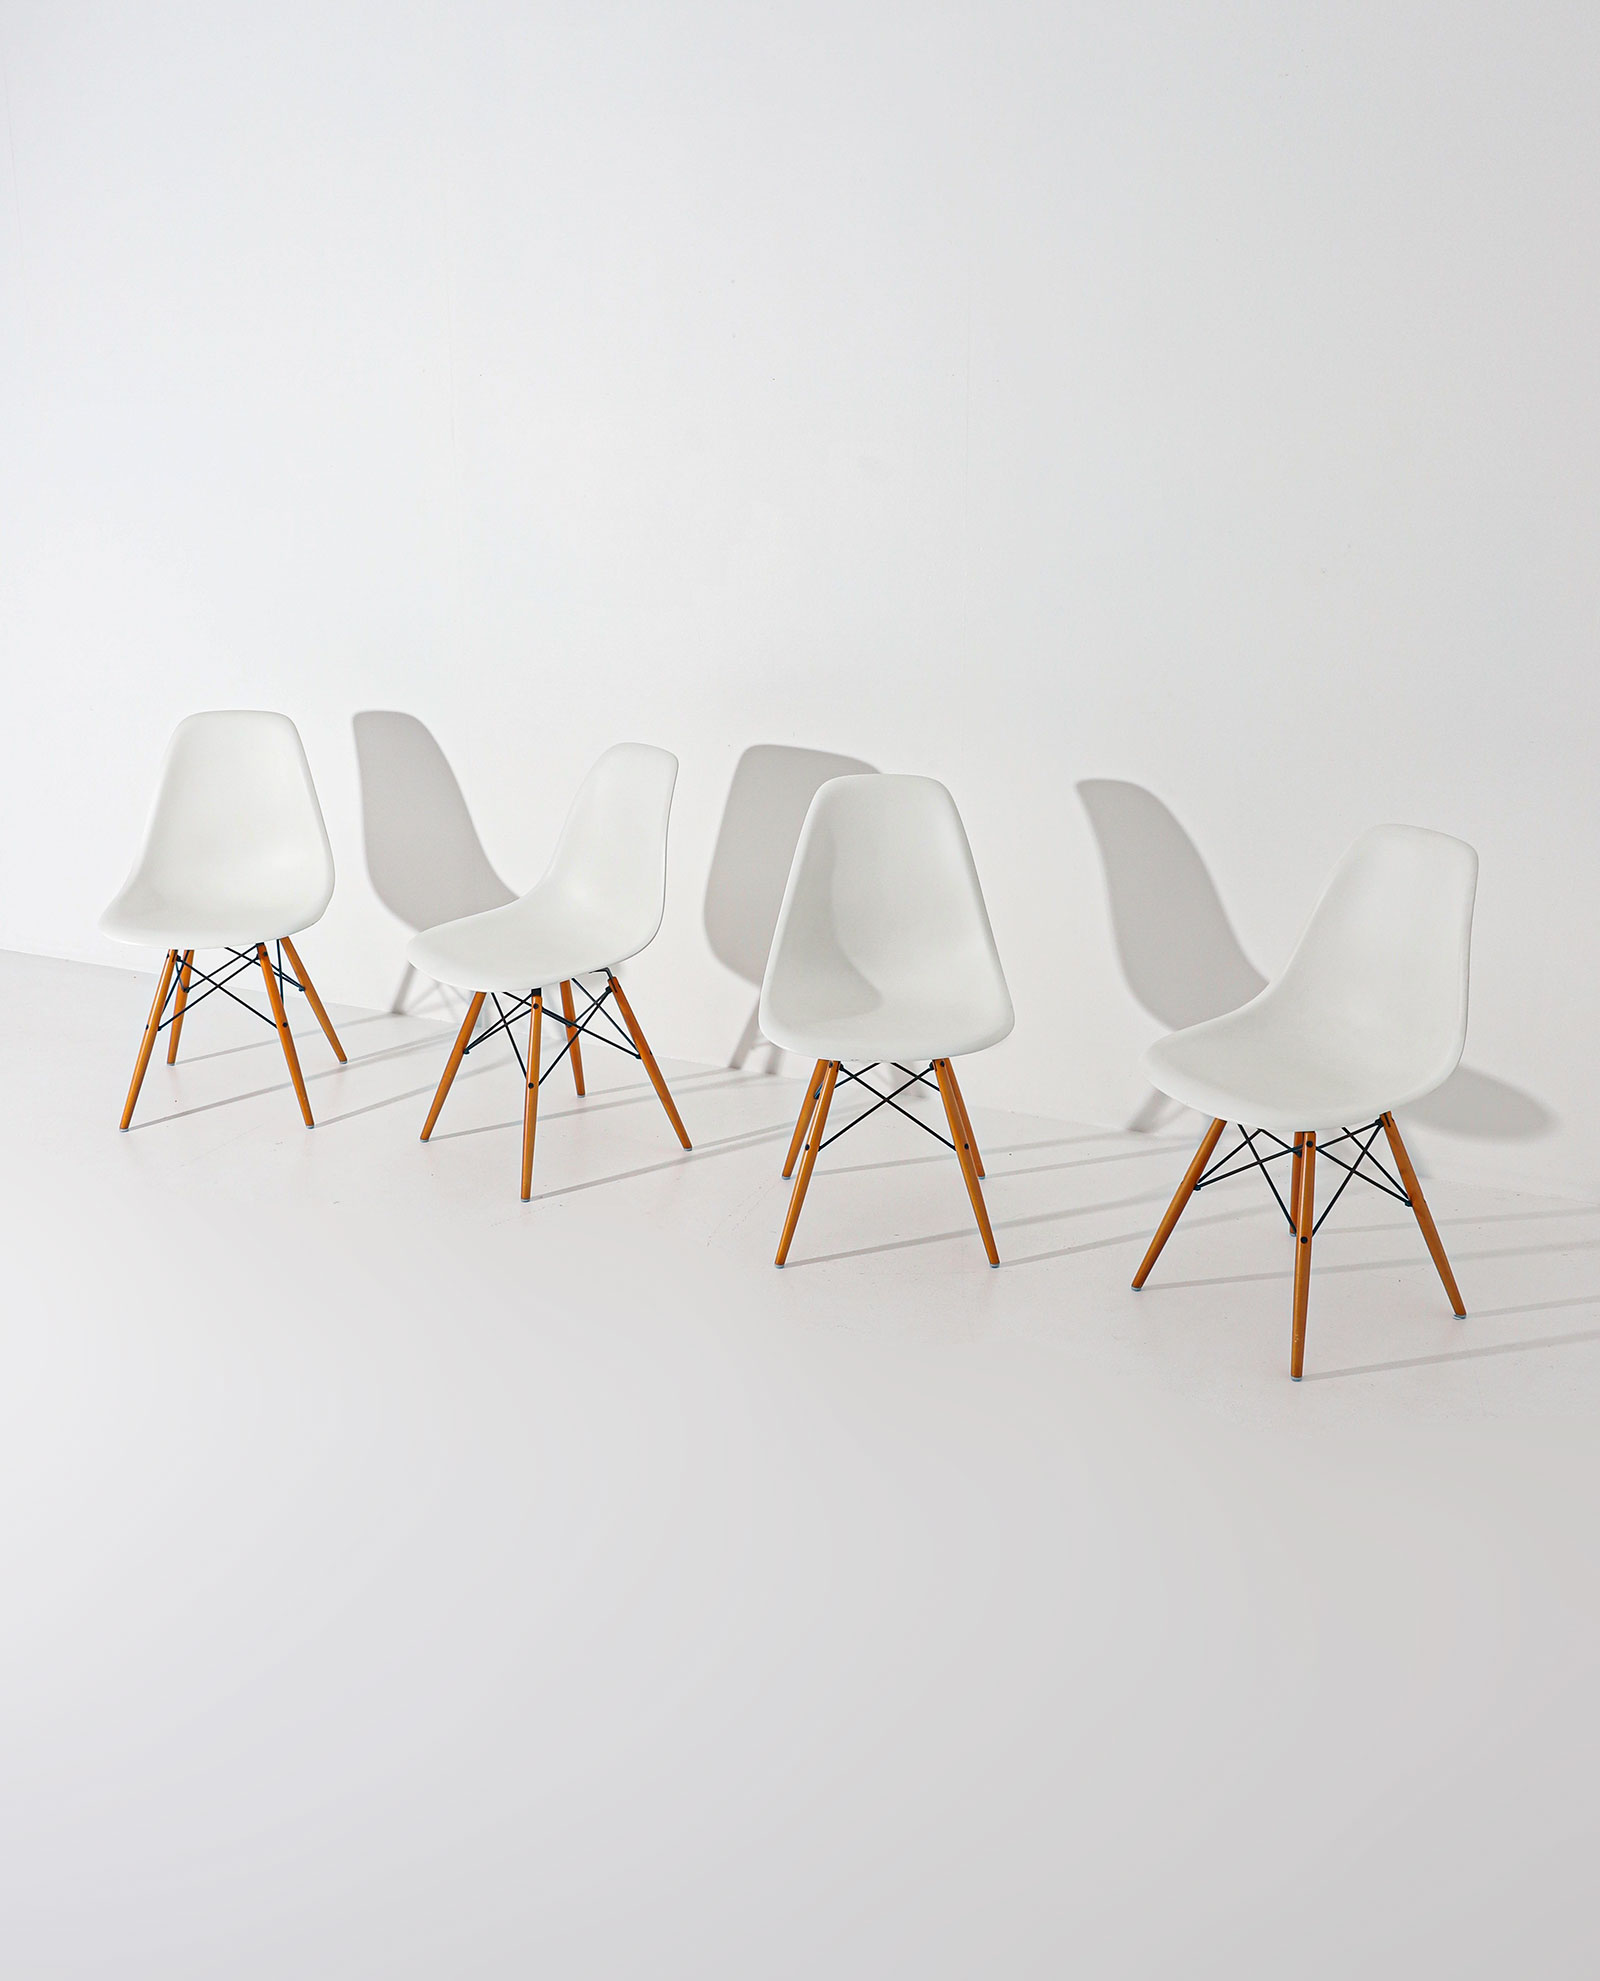 Eames DSW Vitra chairsimage 1